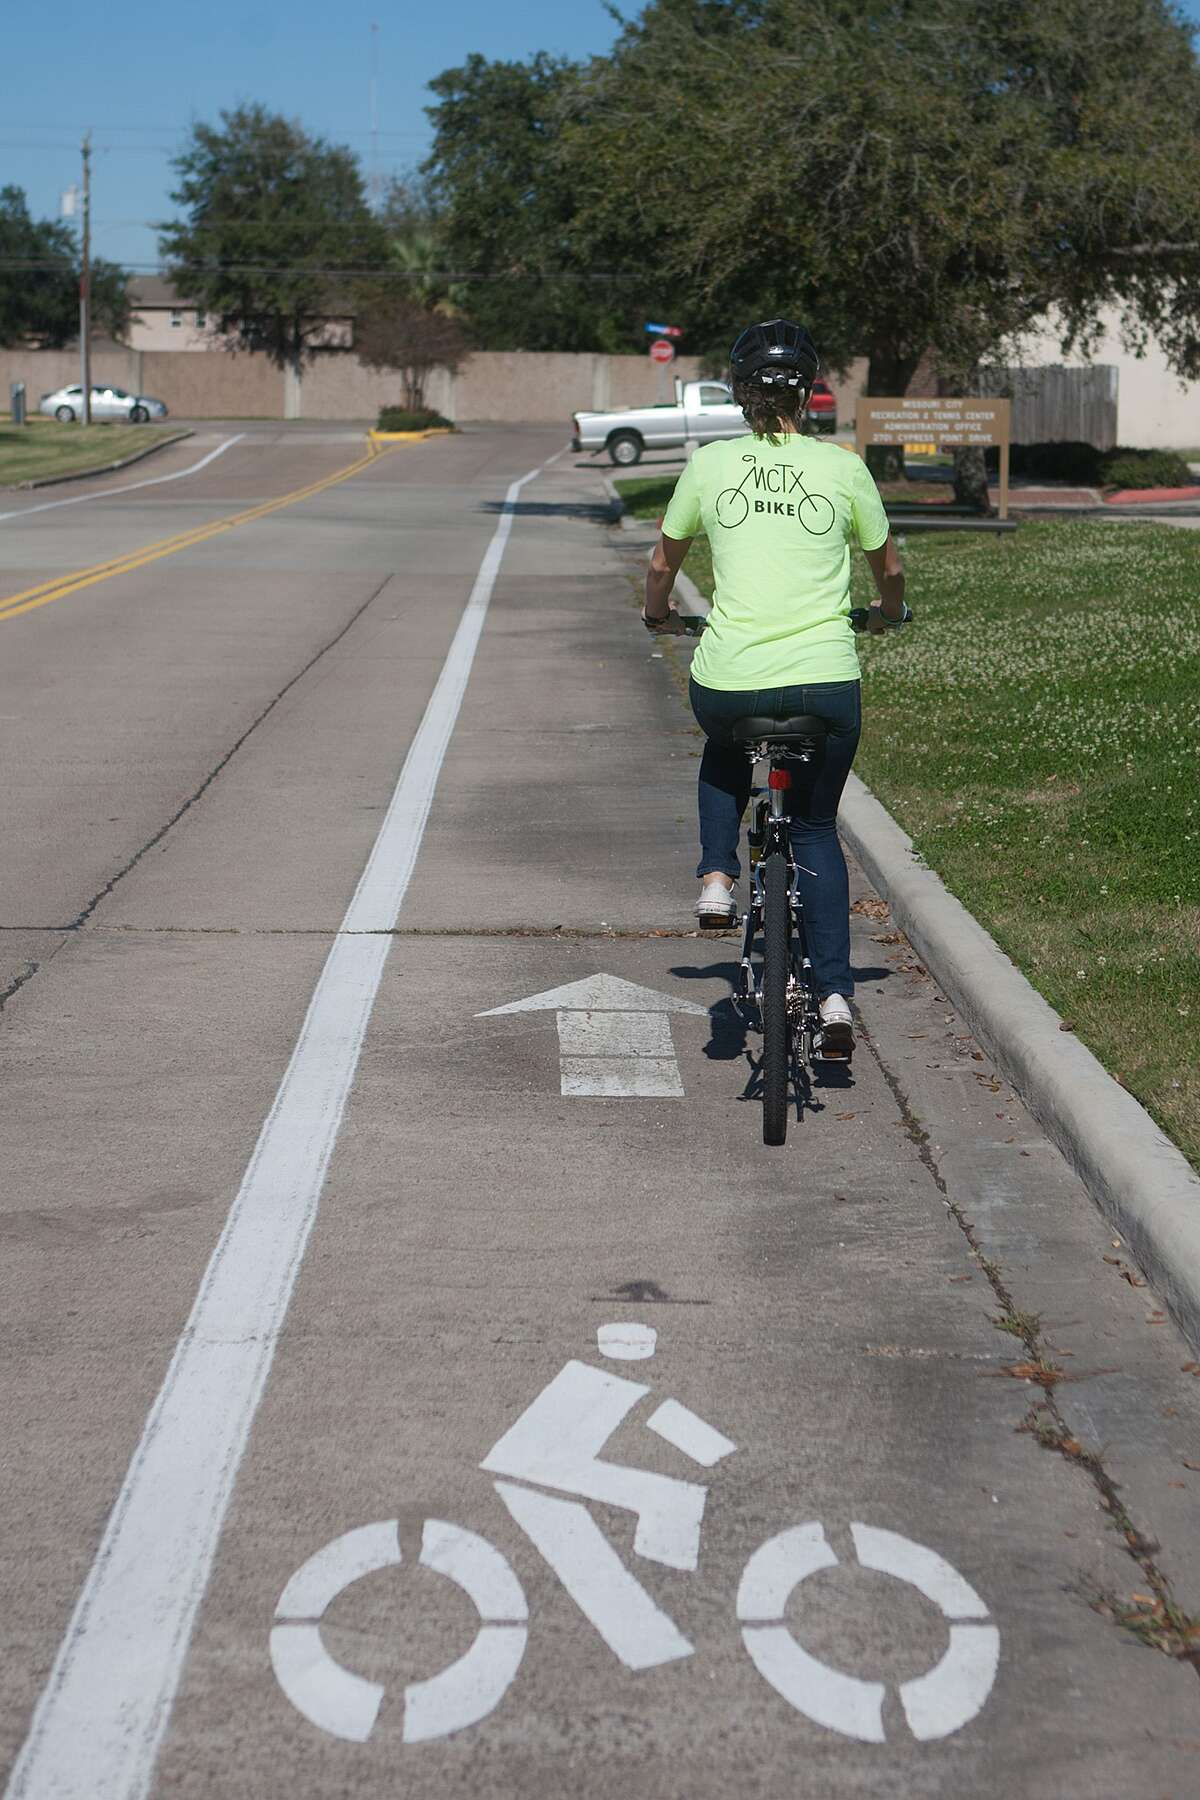 Lindsay Valeri an employee of Missouri City cycles on one of the city's marked bike routes.